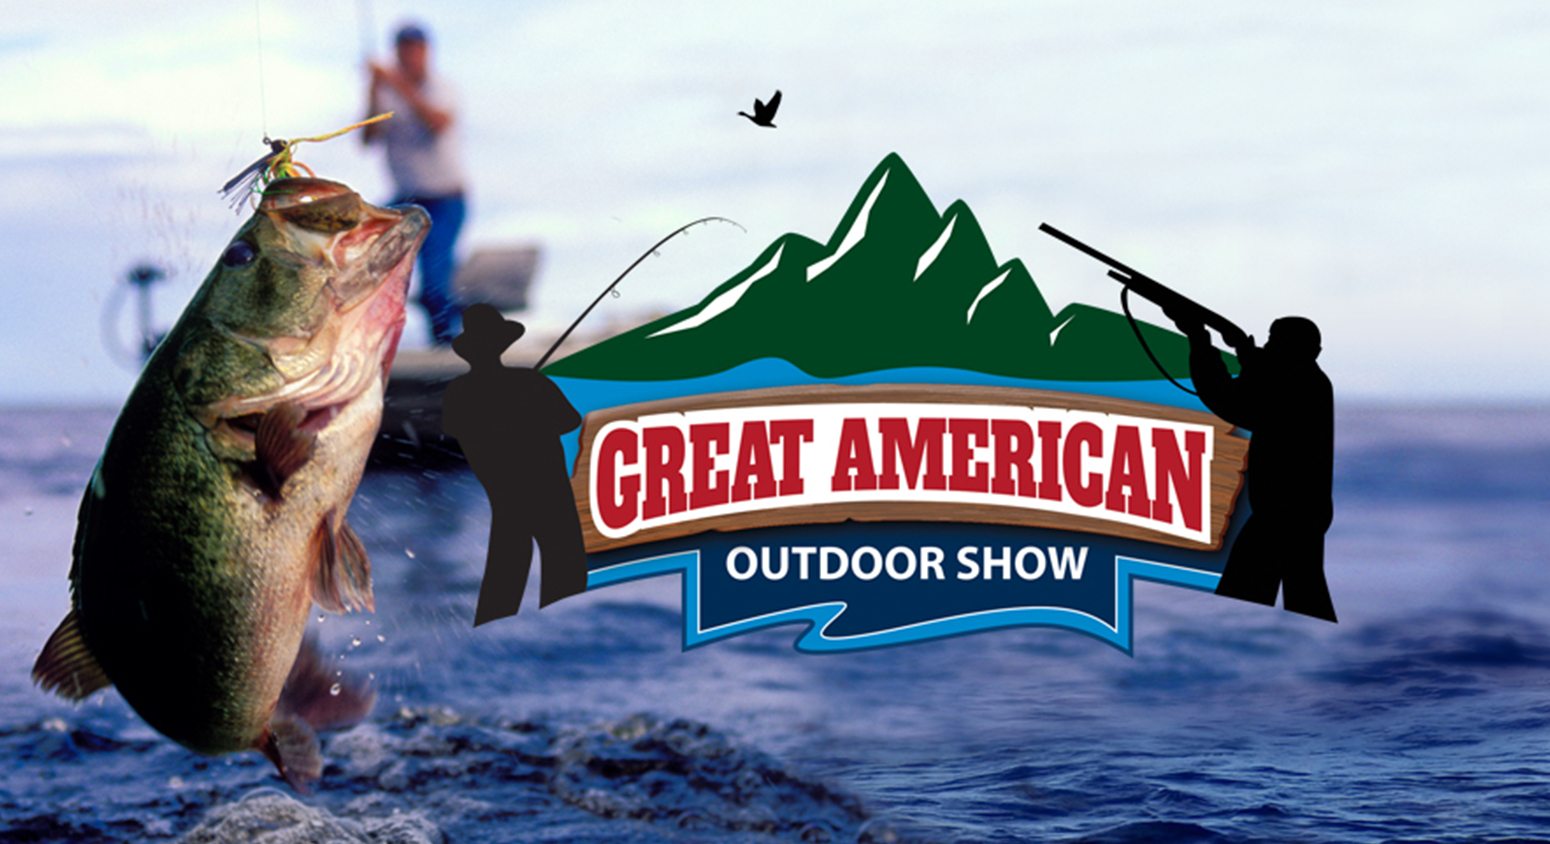 Great American Outdoor Show Events: Saturday, February 6th